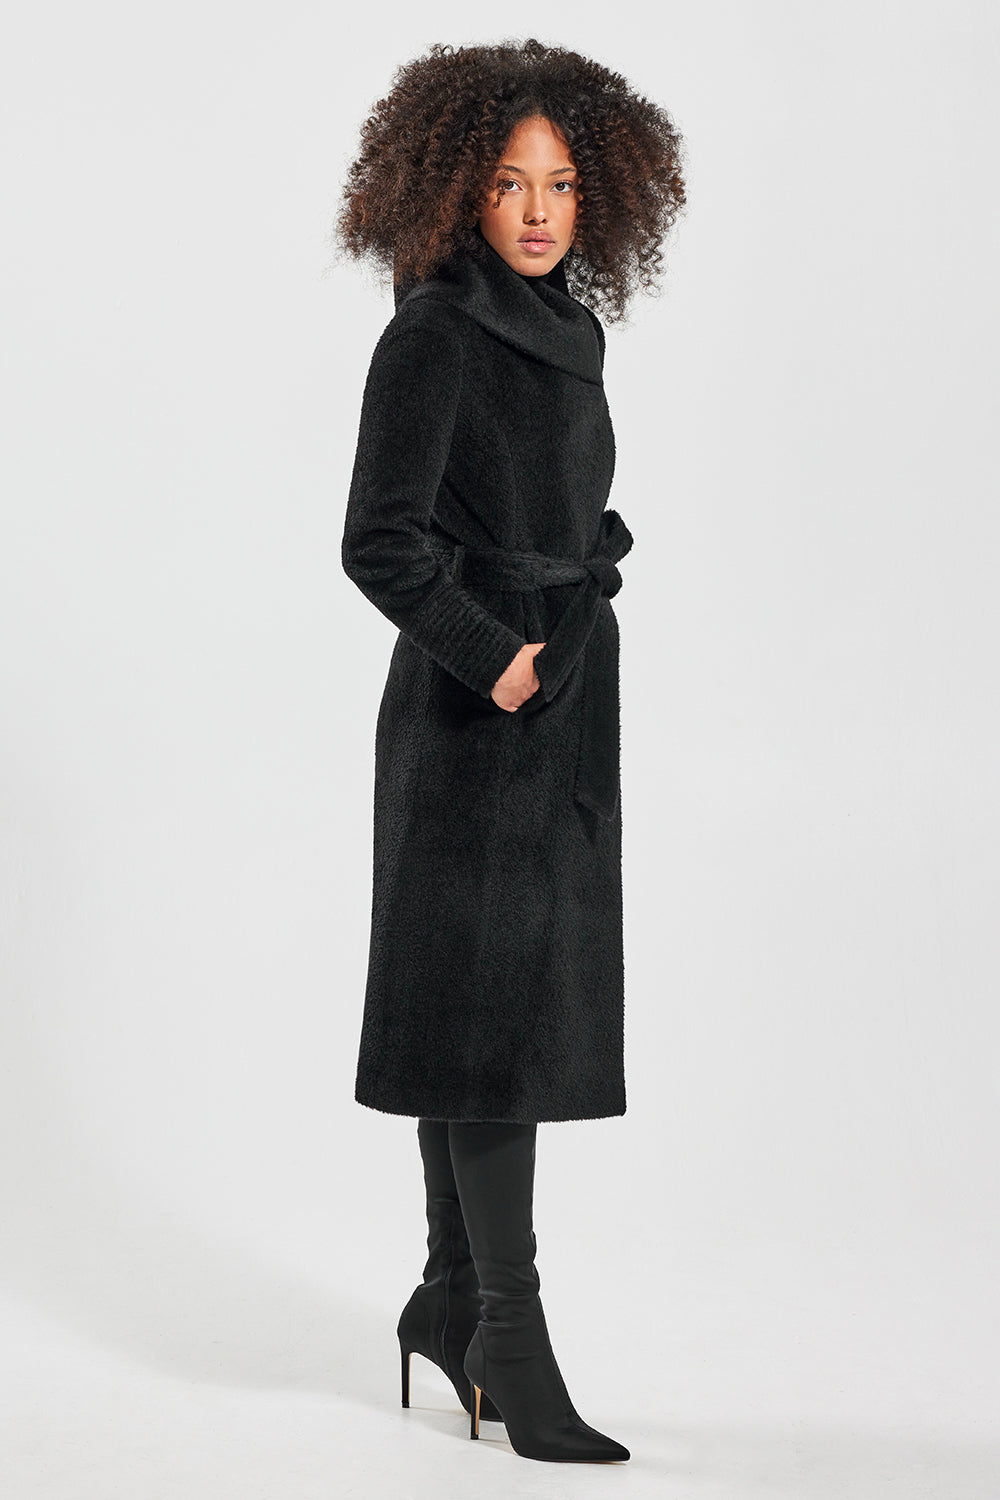 Sentaler Bouclé Alpaca Long Hooded Wrap Coat featured in Bouclé Alpaca and available in Black. Seen from side.